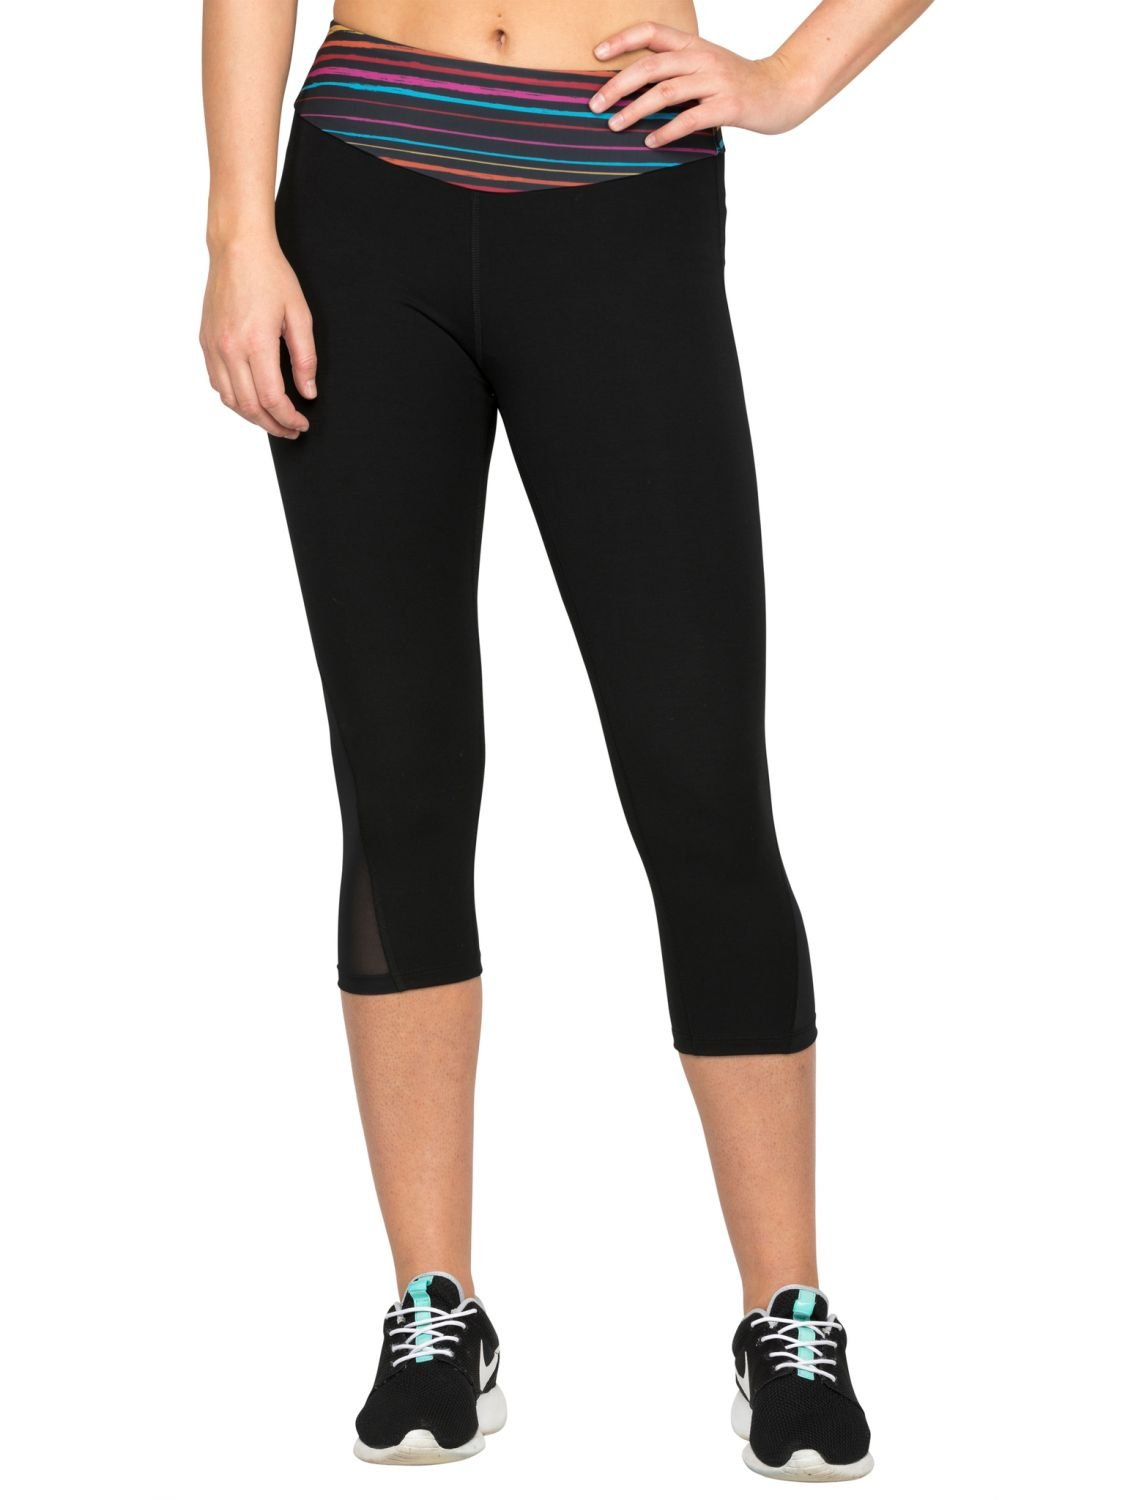 dde67e443c10d1 Chillaz Women's Sundergrund 3/4 Tights: Amazon.co.uk: Sports & Outdoors